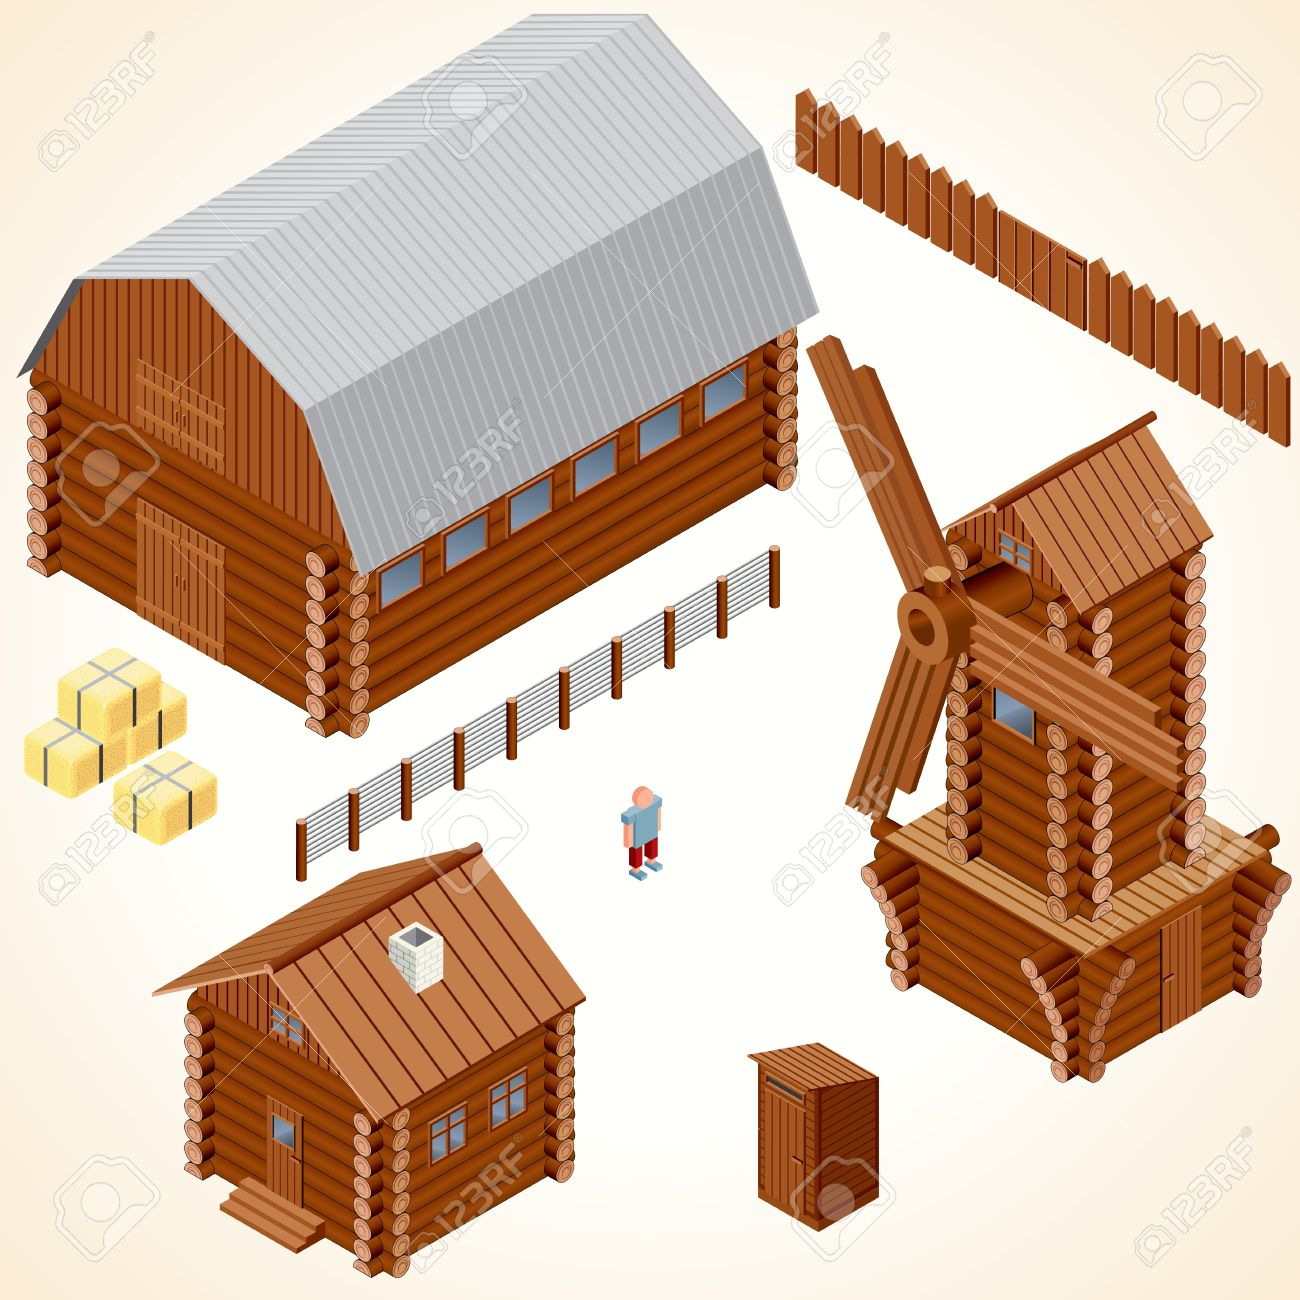 Rustic Wood House Clipart.